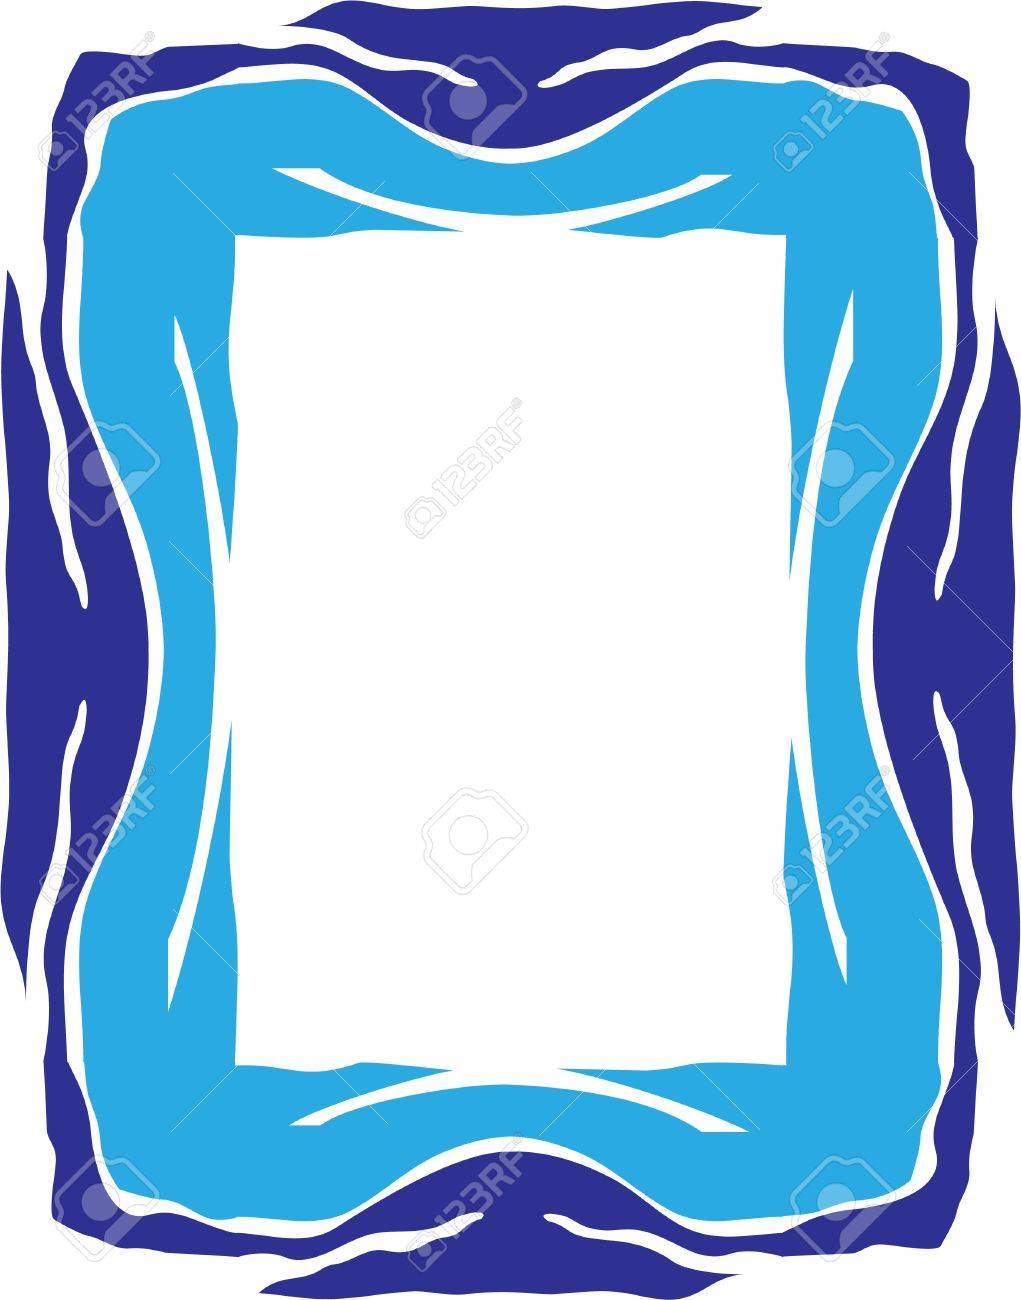 graphic frame for design elements Stock Vector - 10598964